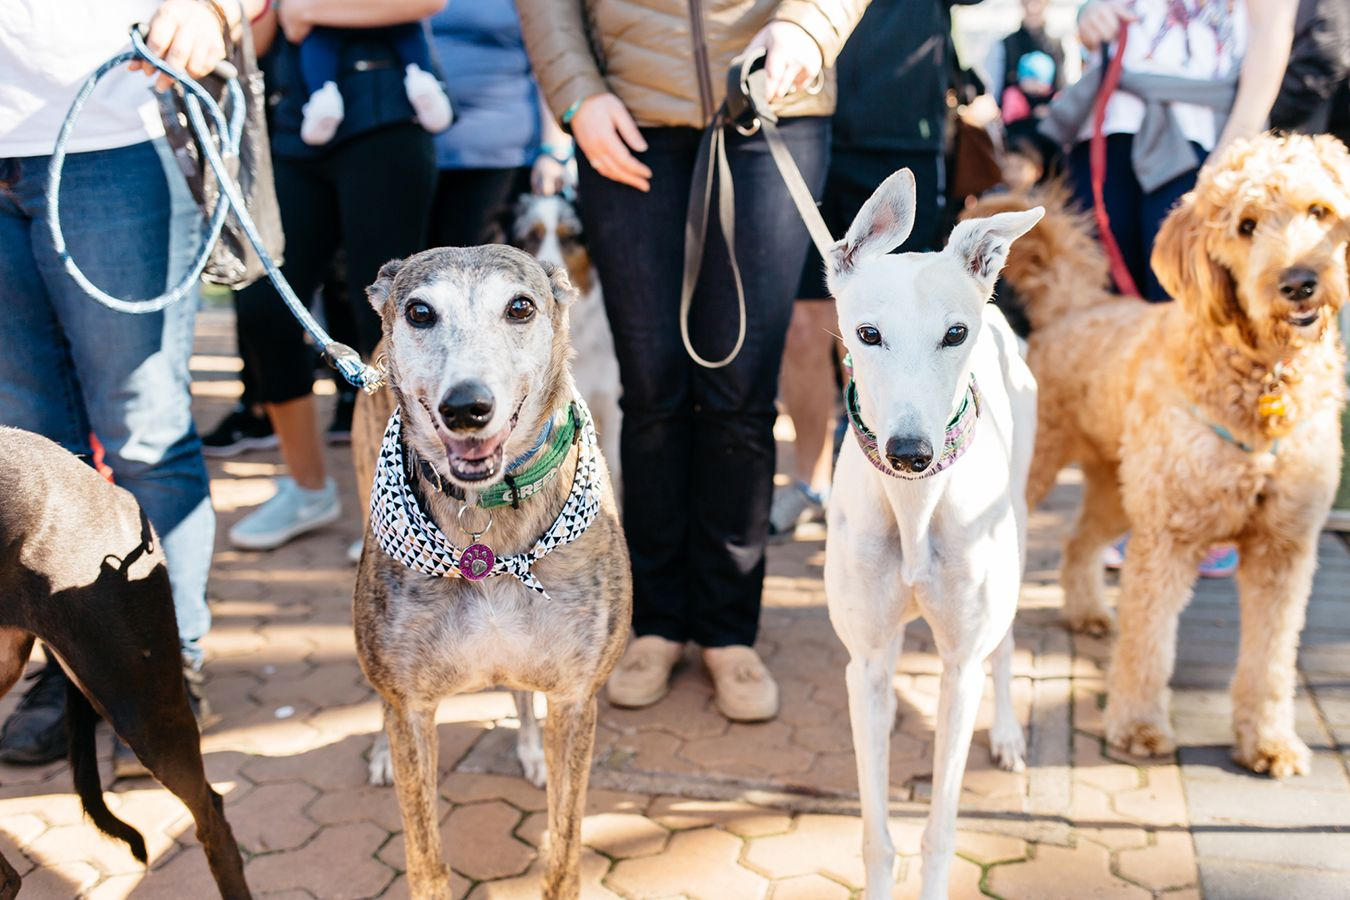 Rspca Million Paws Walk 2019 May 19 Australian Dog Lover Dogs Day Out Australia Animals Fight Animal Cruelty